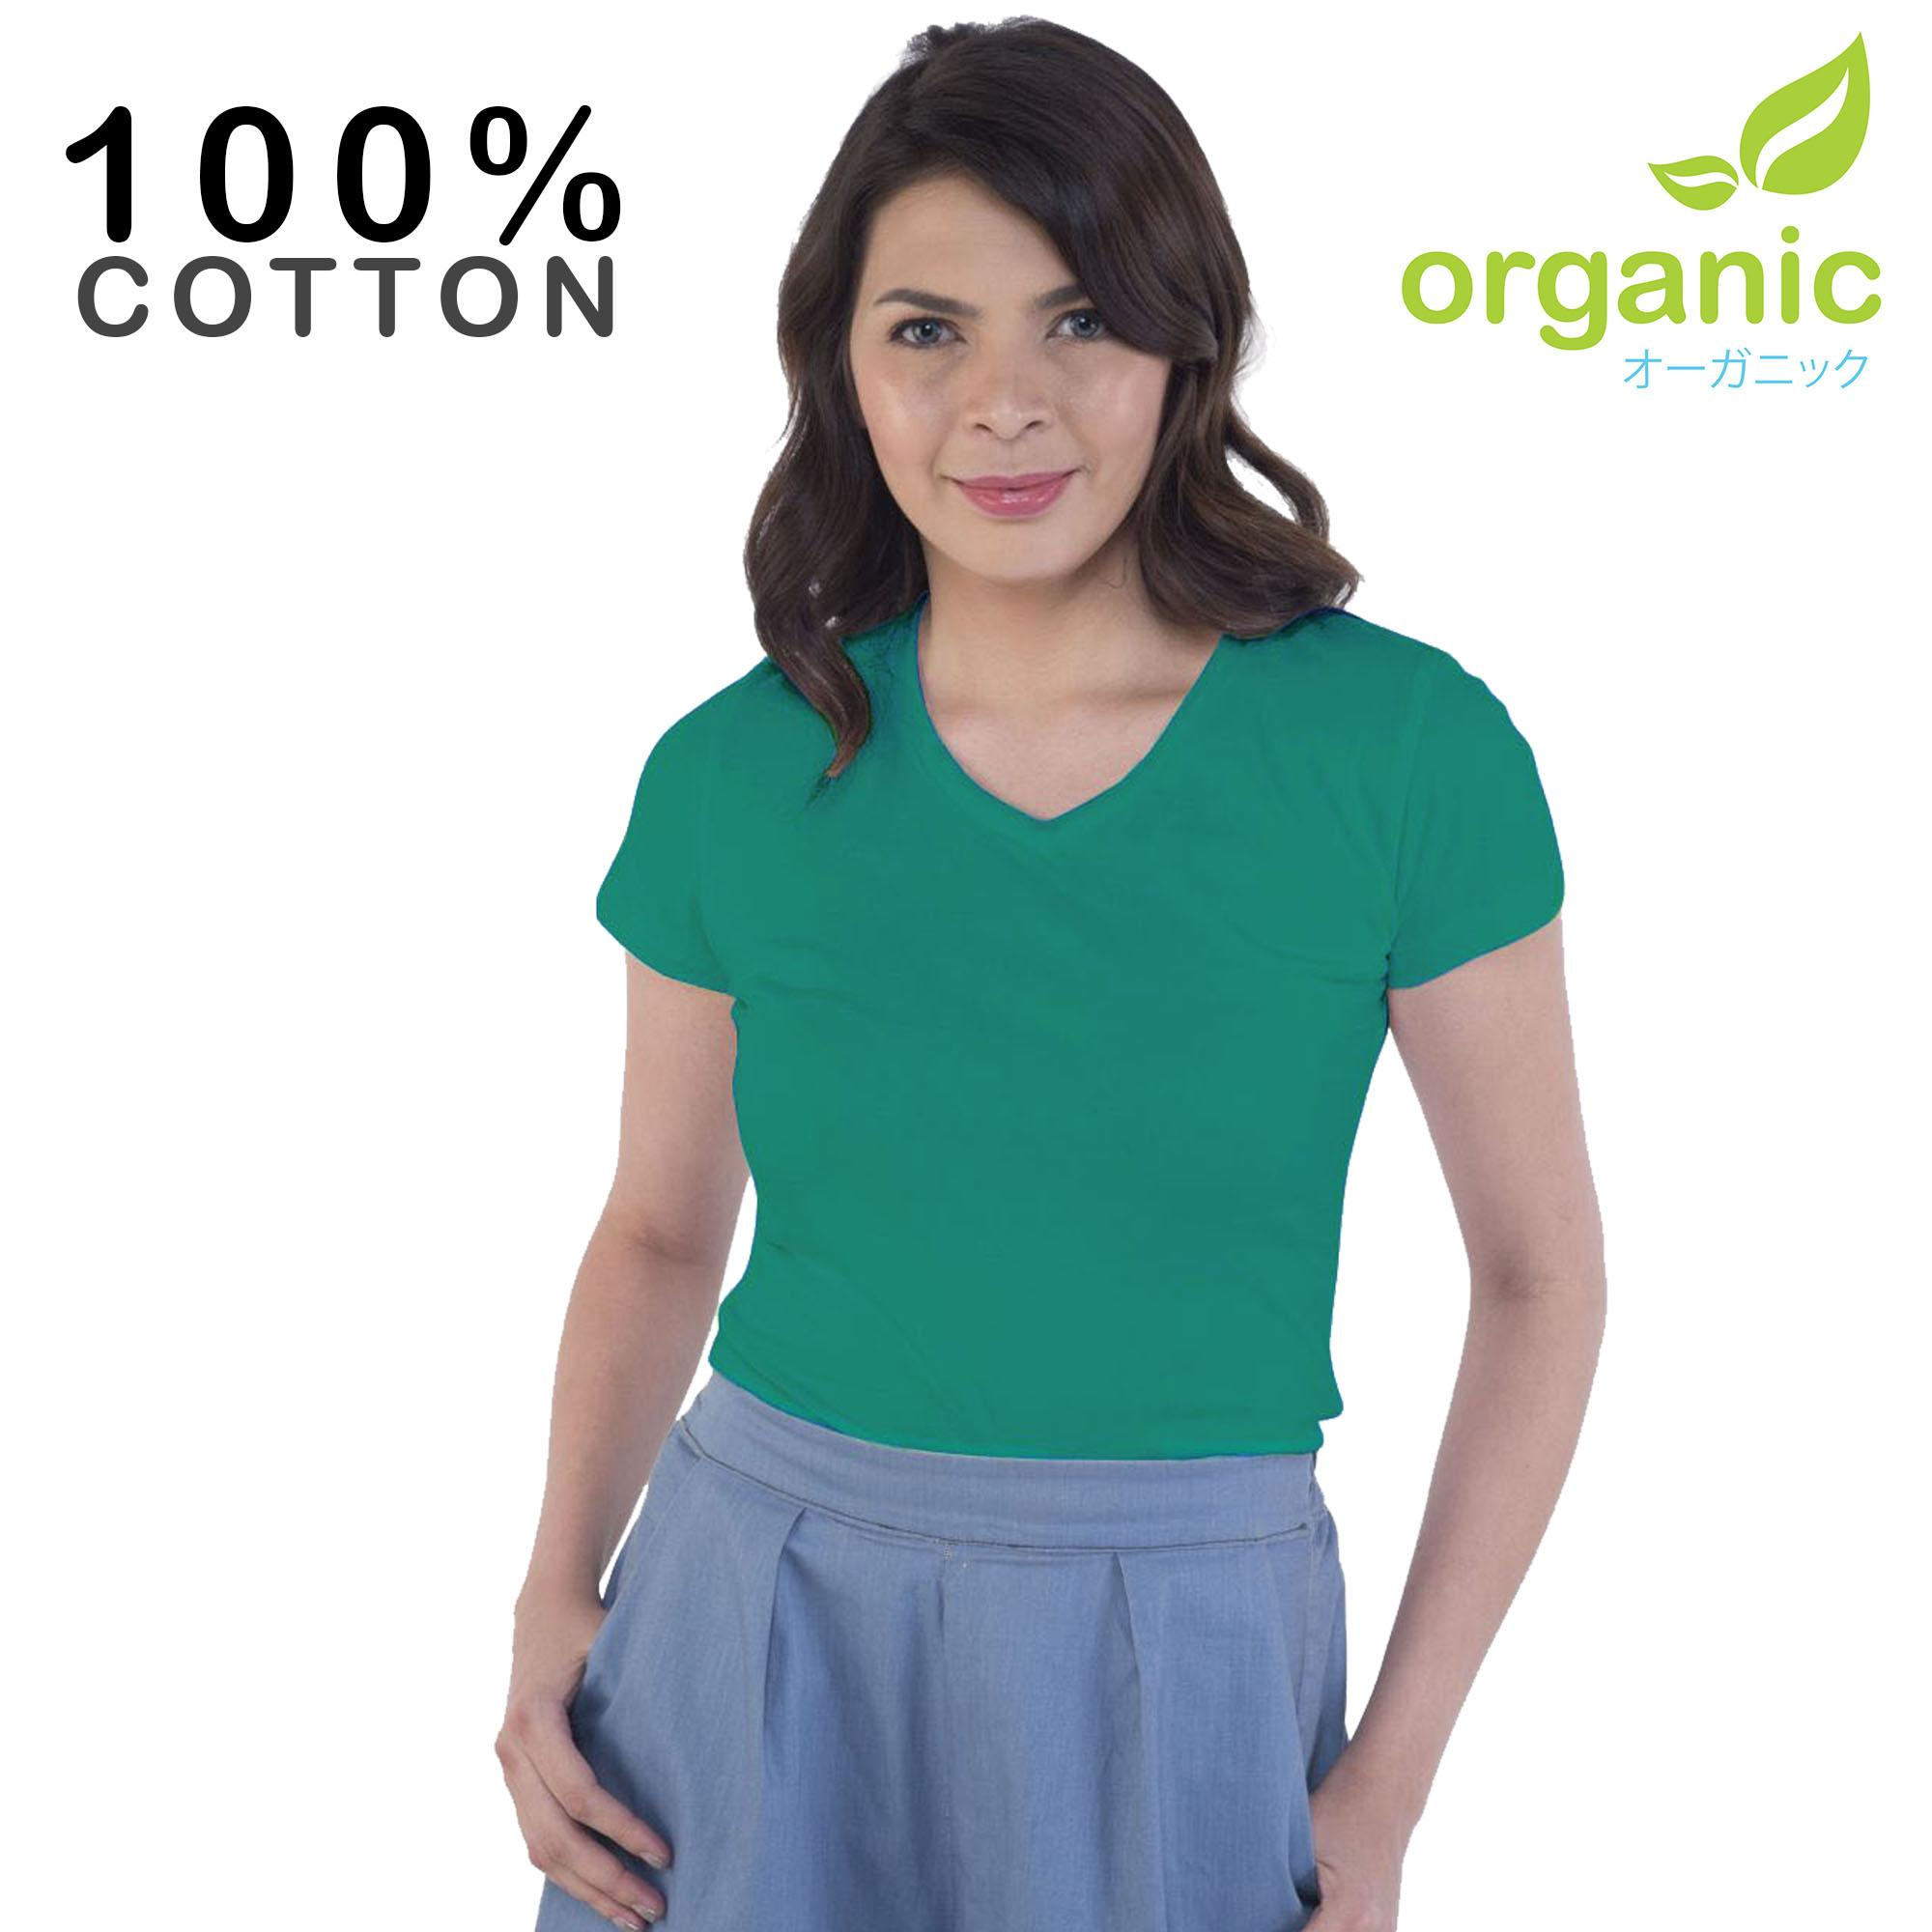 1026488 items found in Tops. Organic Ladies 100% Cotton Vneck Fashionable Tees  t shirt tshirt shirts tshirts v neck blouse d632d3f296